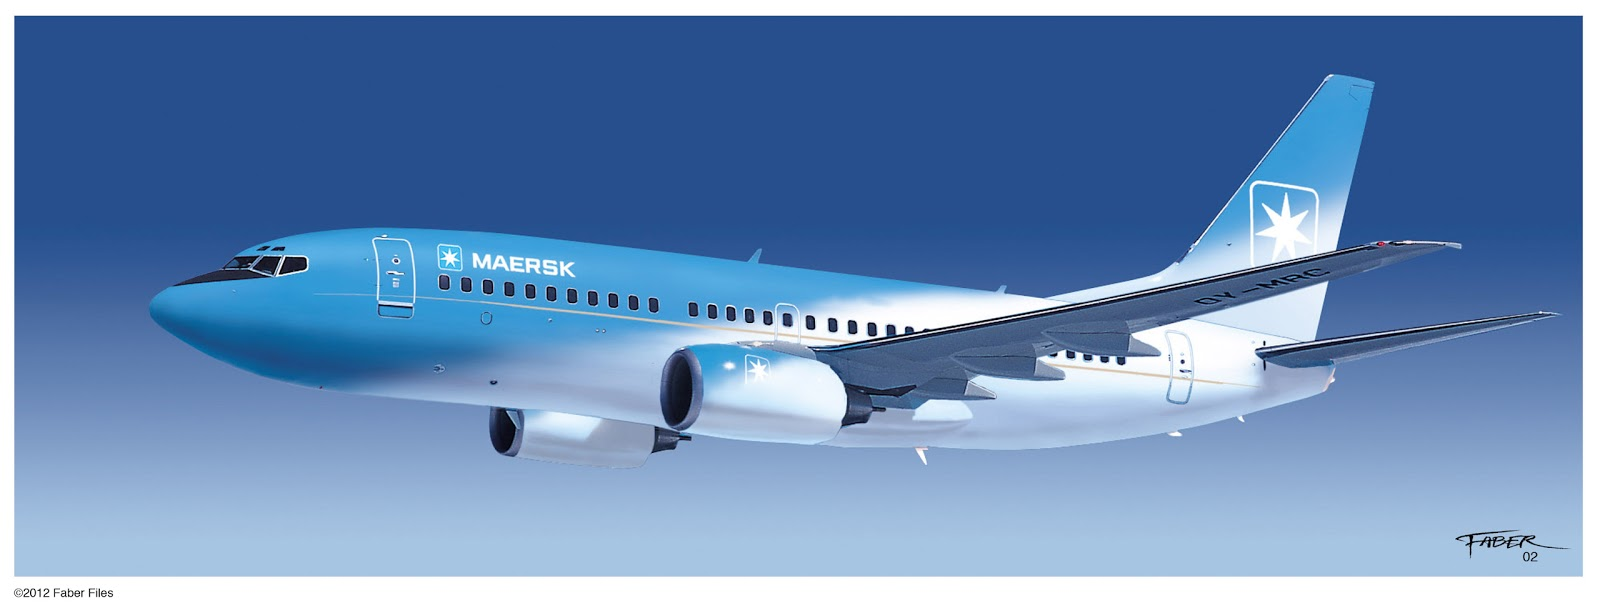 Faber files maersk air decoration concept - Air deco ...